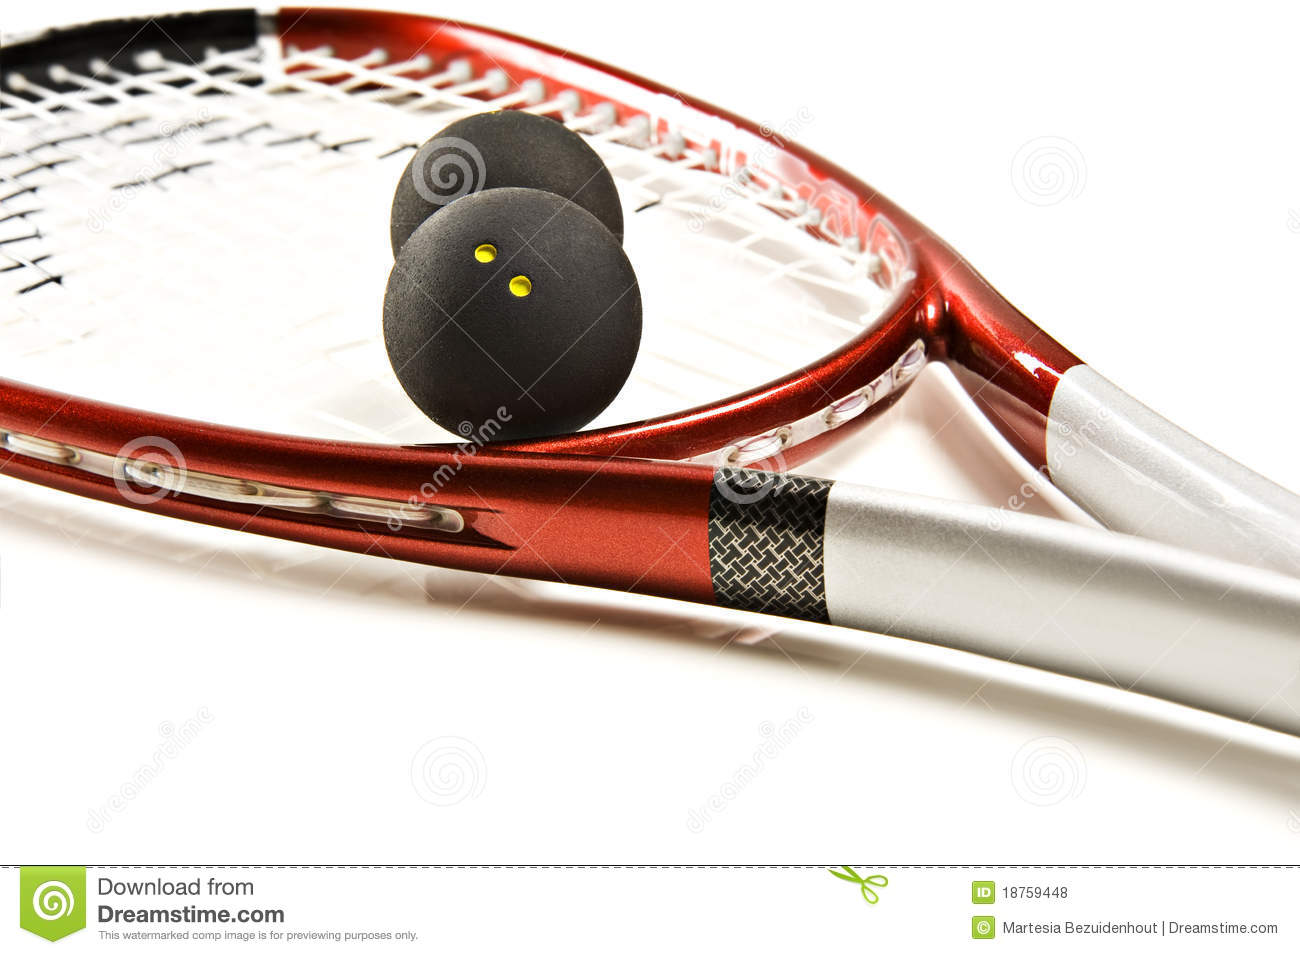 Royalty Free Stock Photos Squash Racket Balls Image18759448 on squash racquets